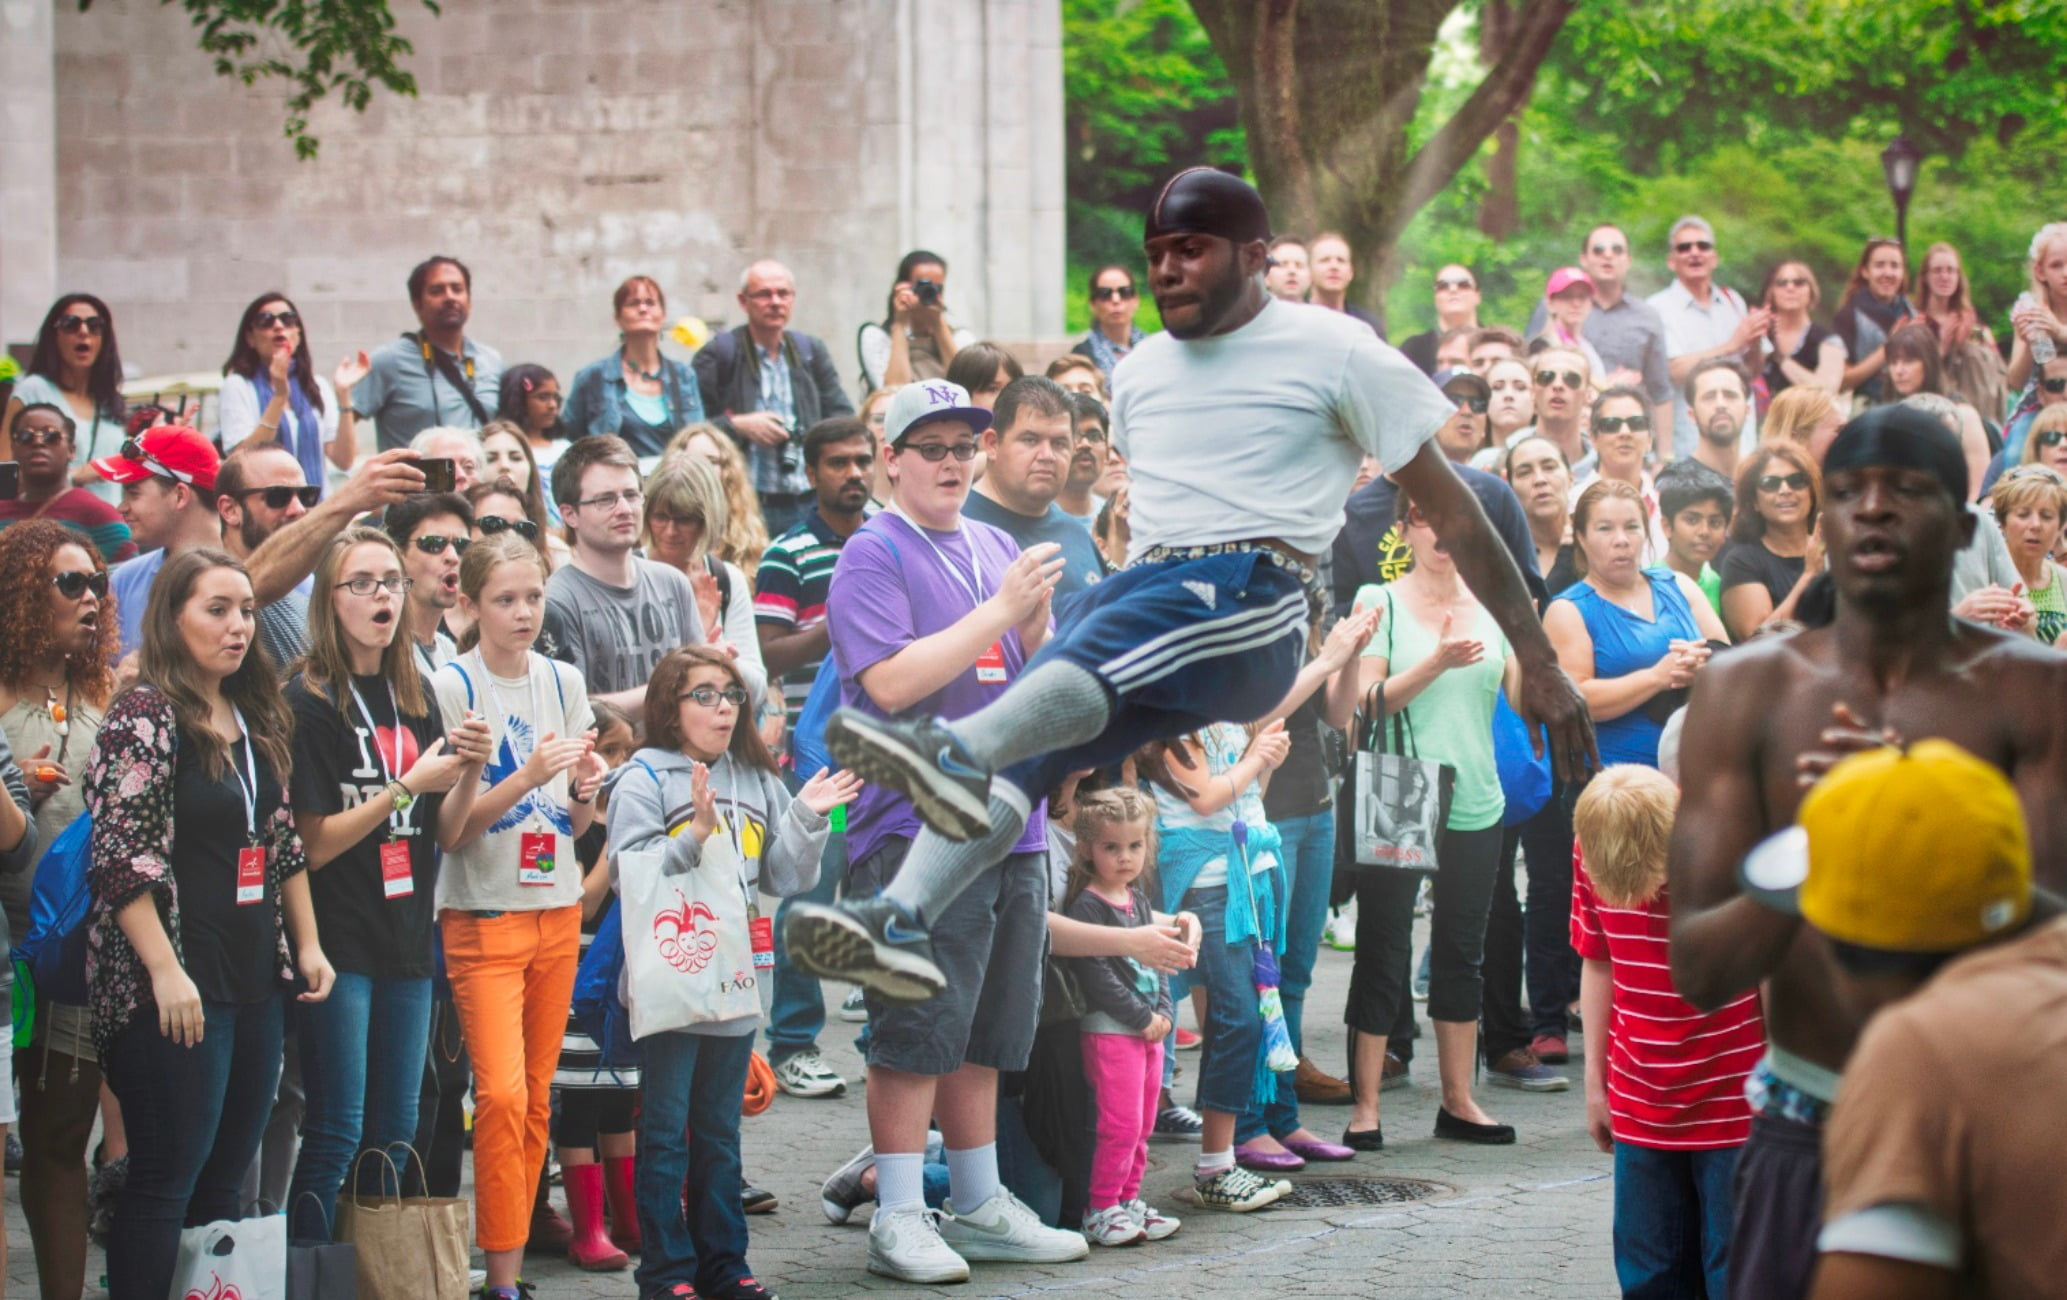 Public space, Audience, Child, Style, Community, Jeans, Crowd, People, Footwear